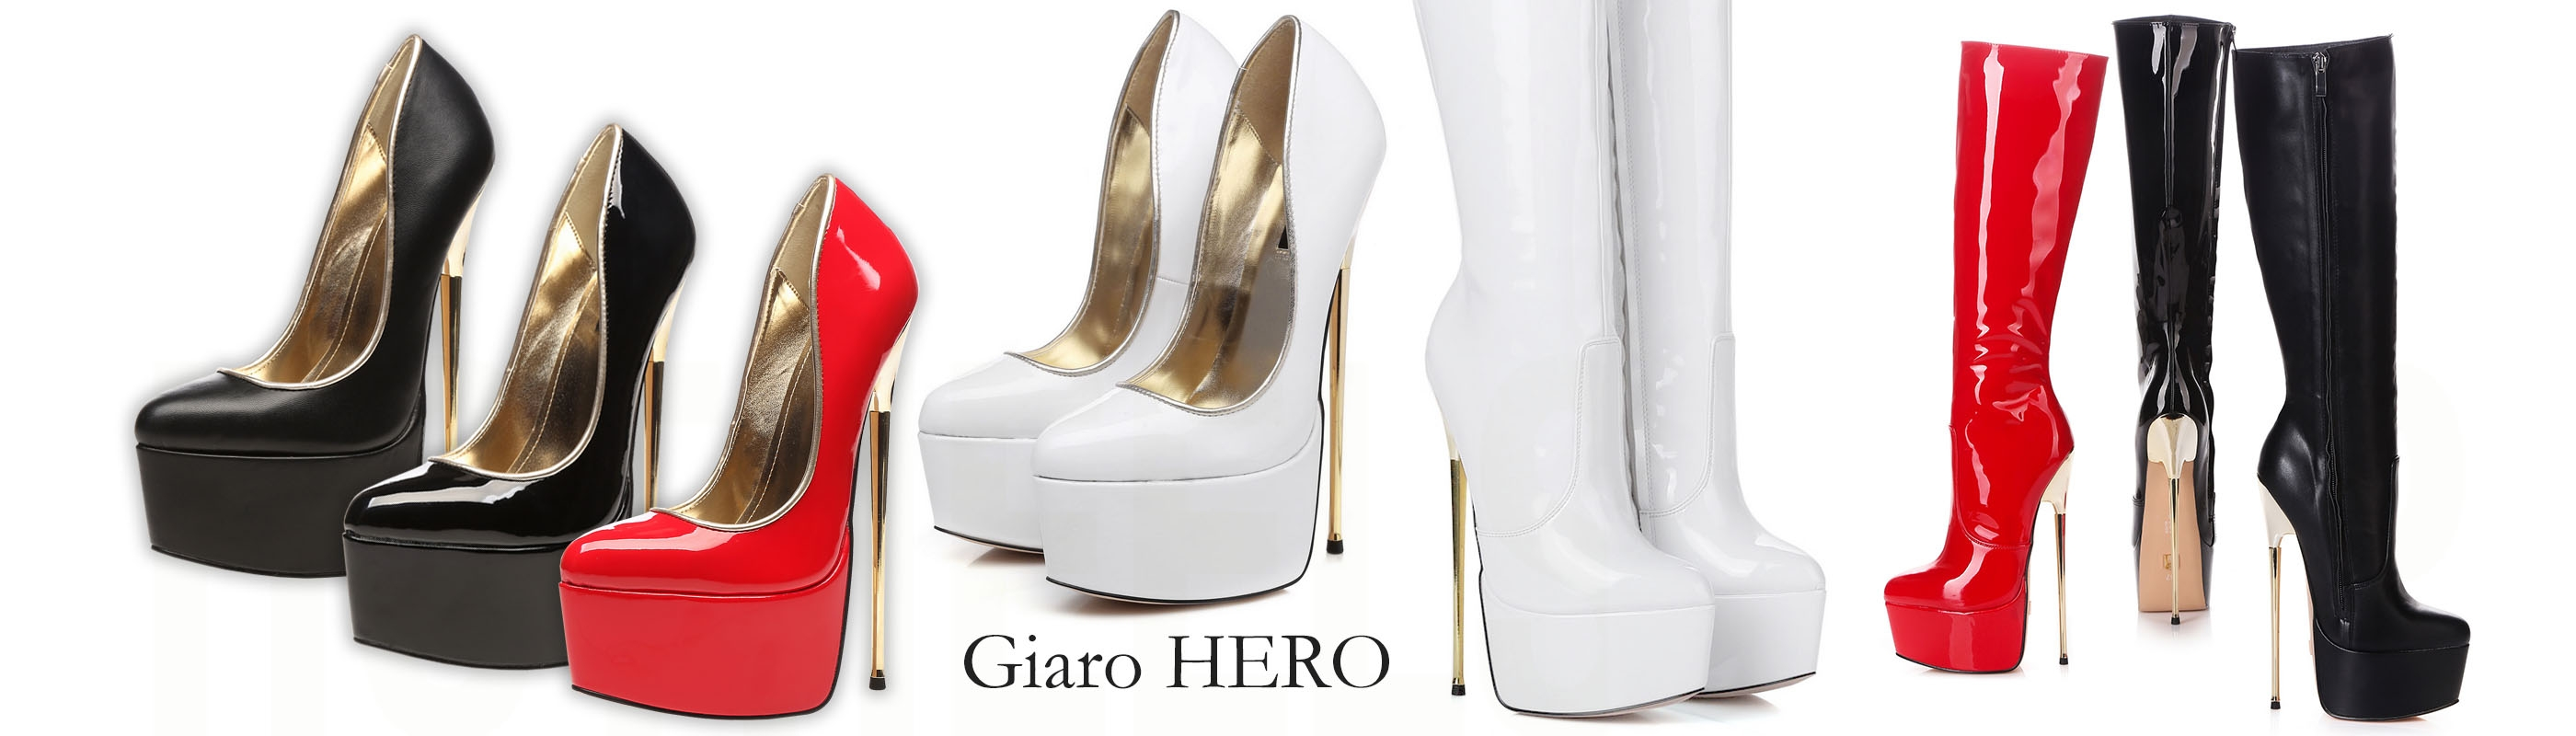 Giaro HERO gold fetish high heels, overknee boots, pumps, knee high boots